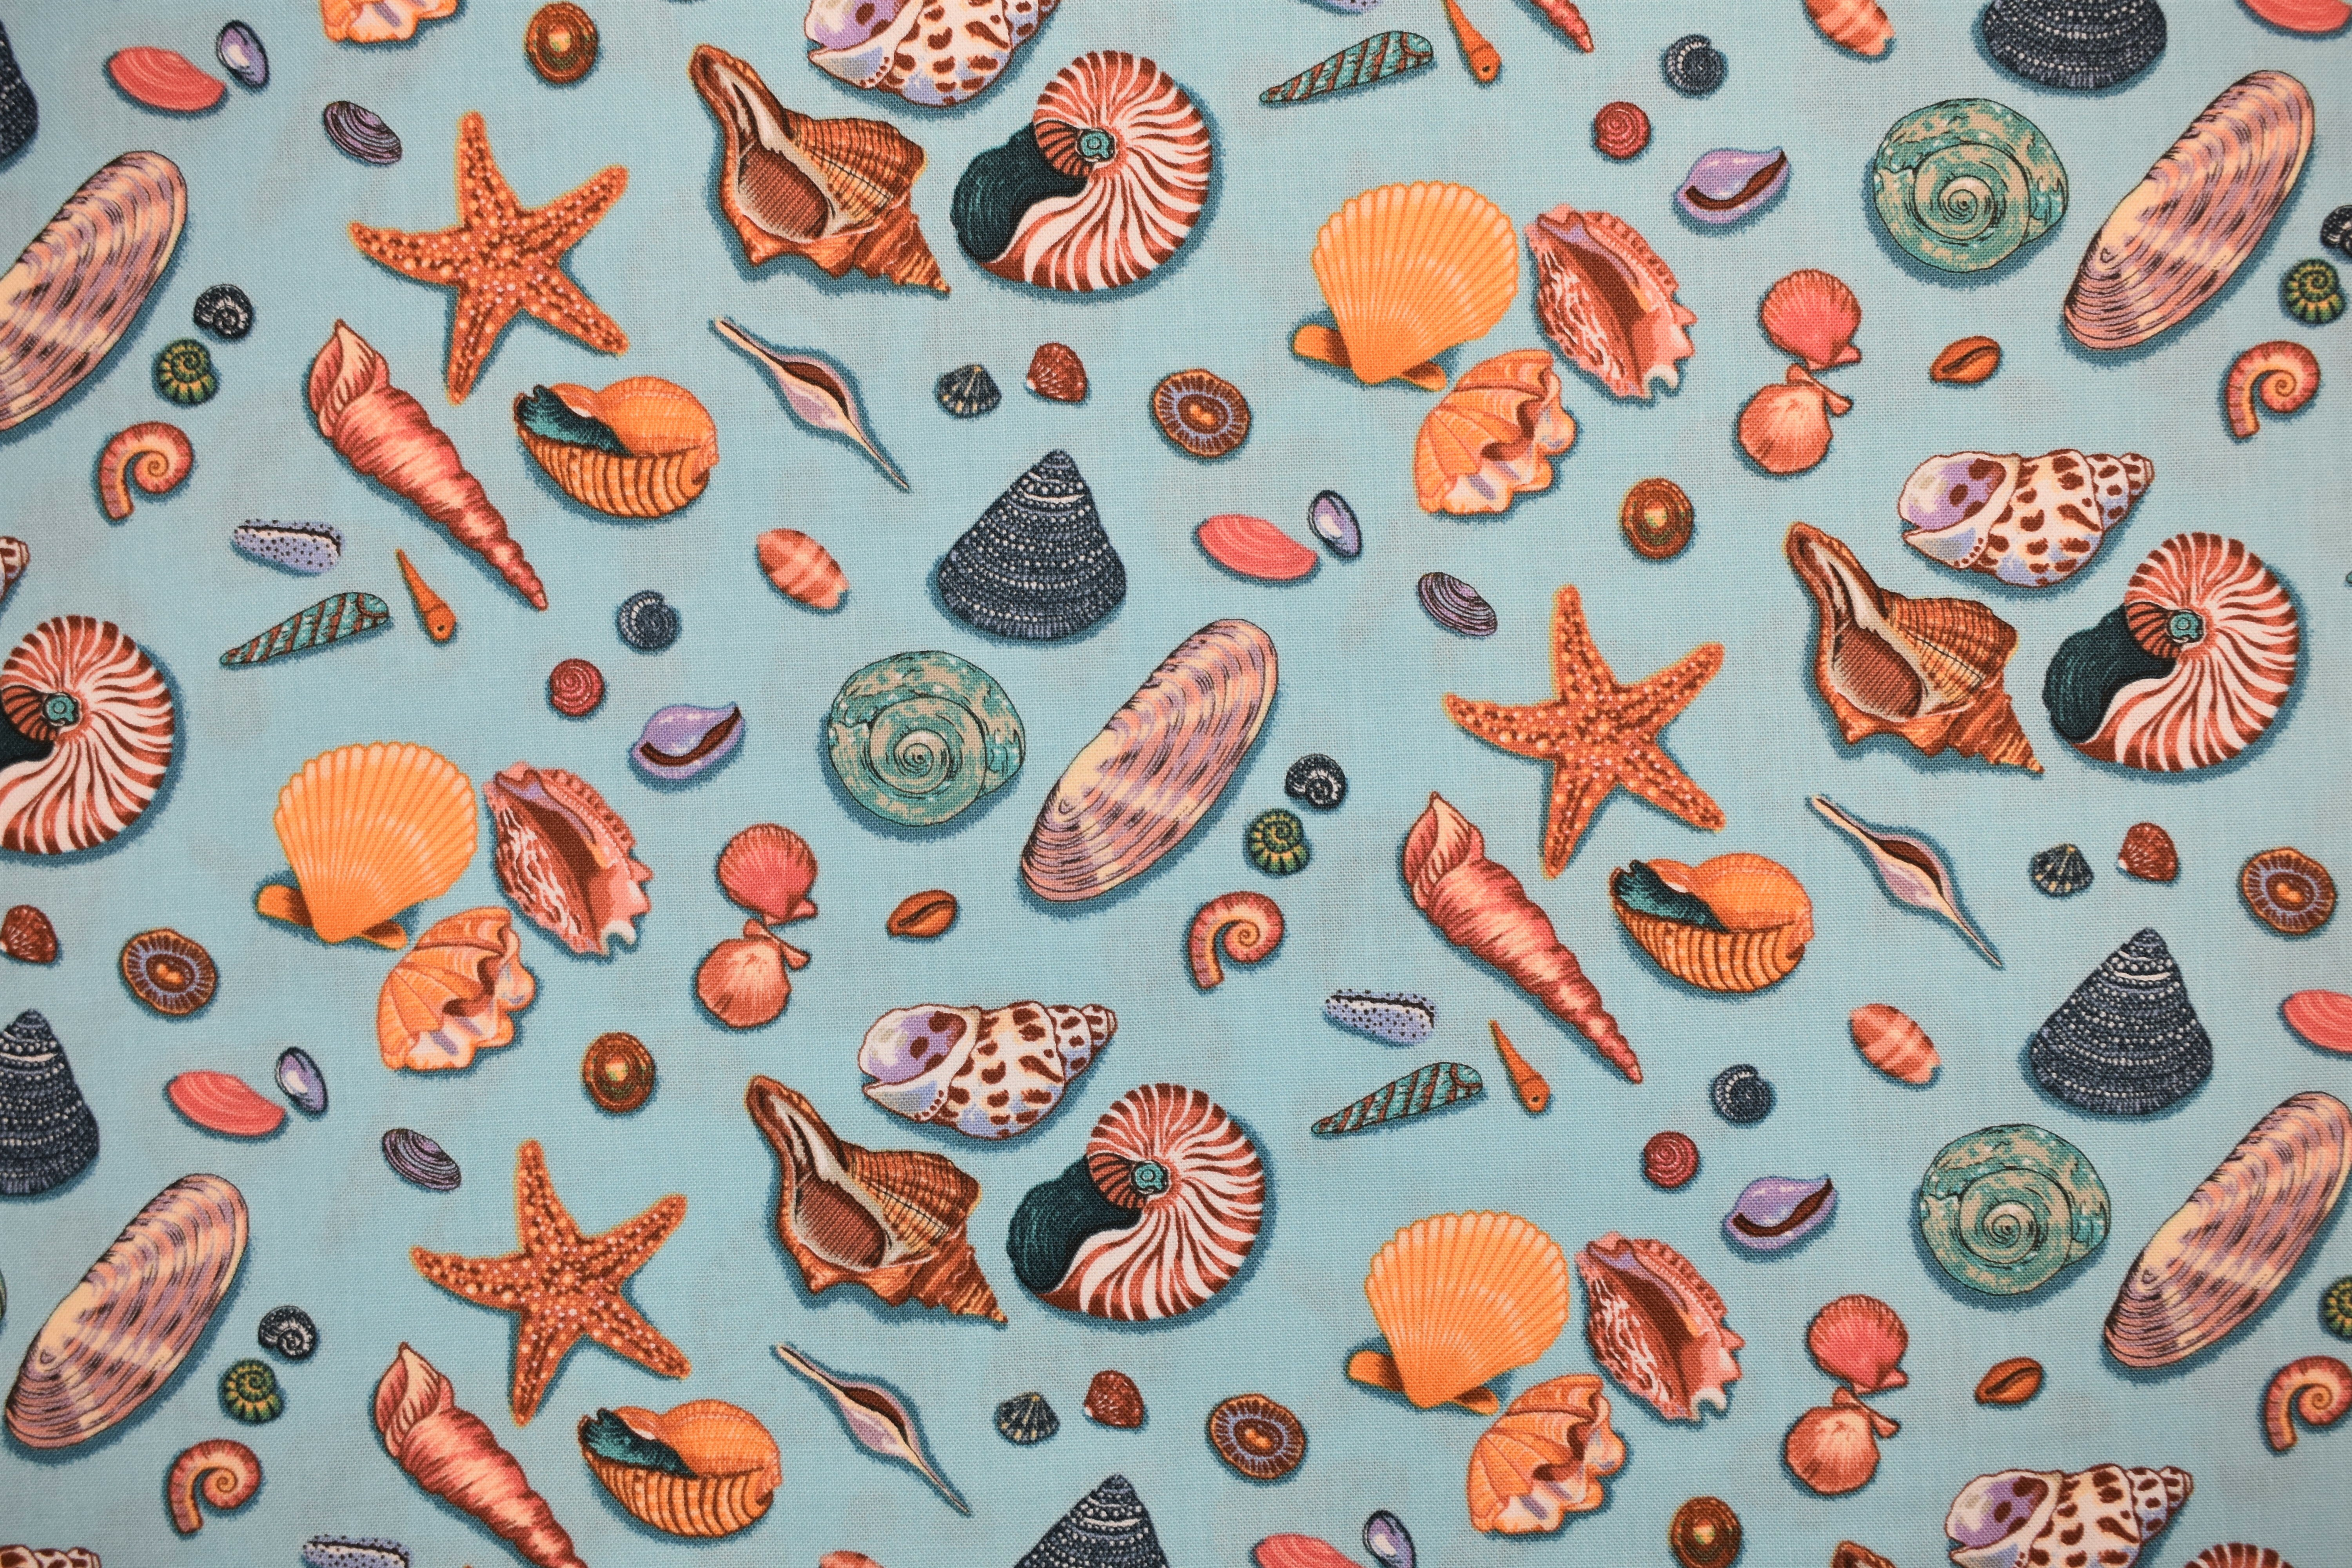 By the Sea - Shells - Nutex 54988